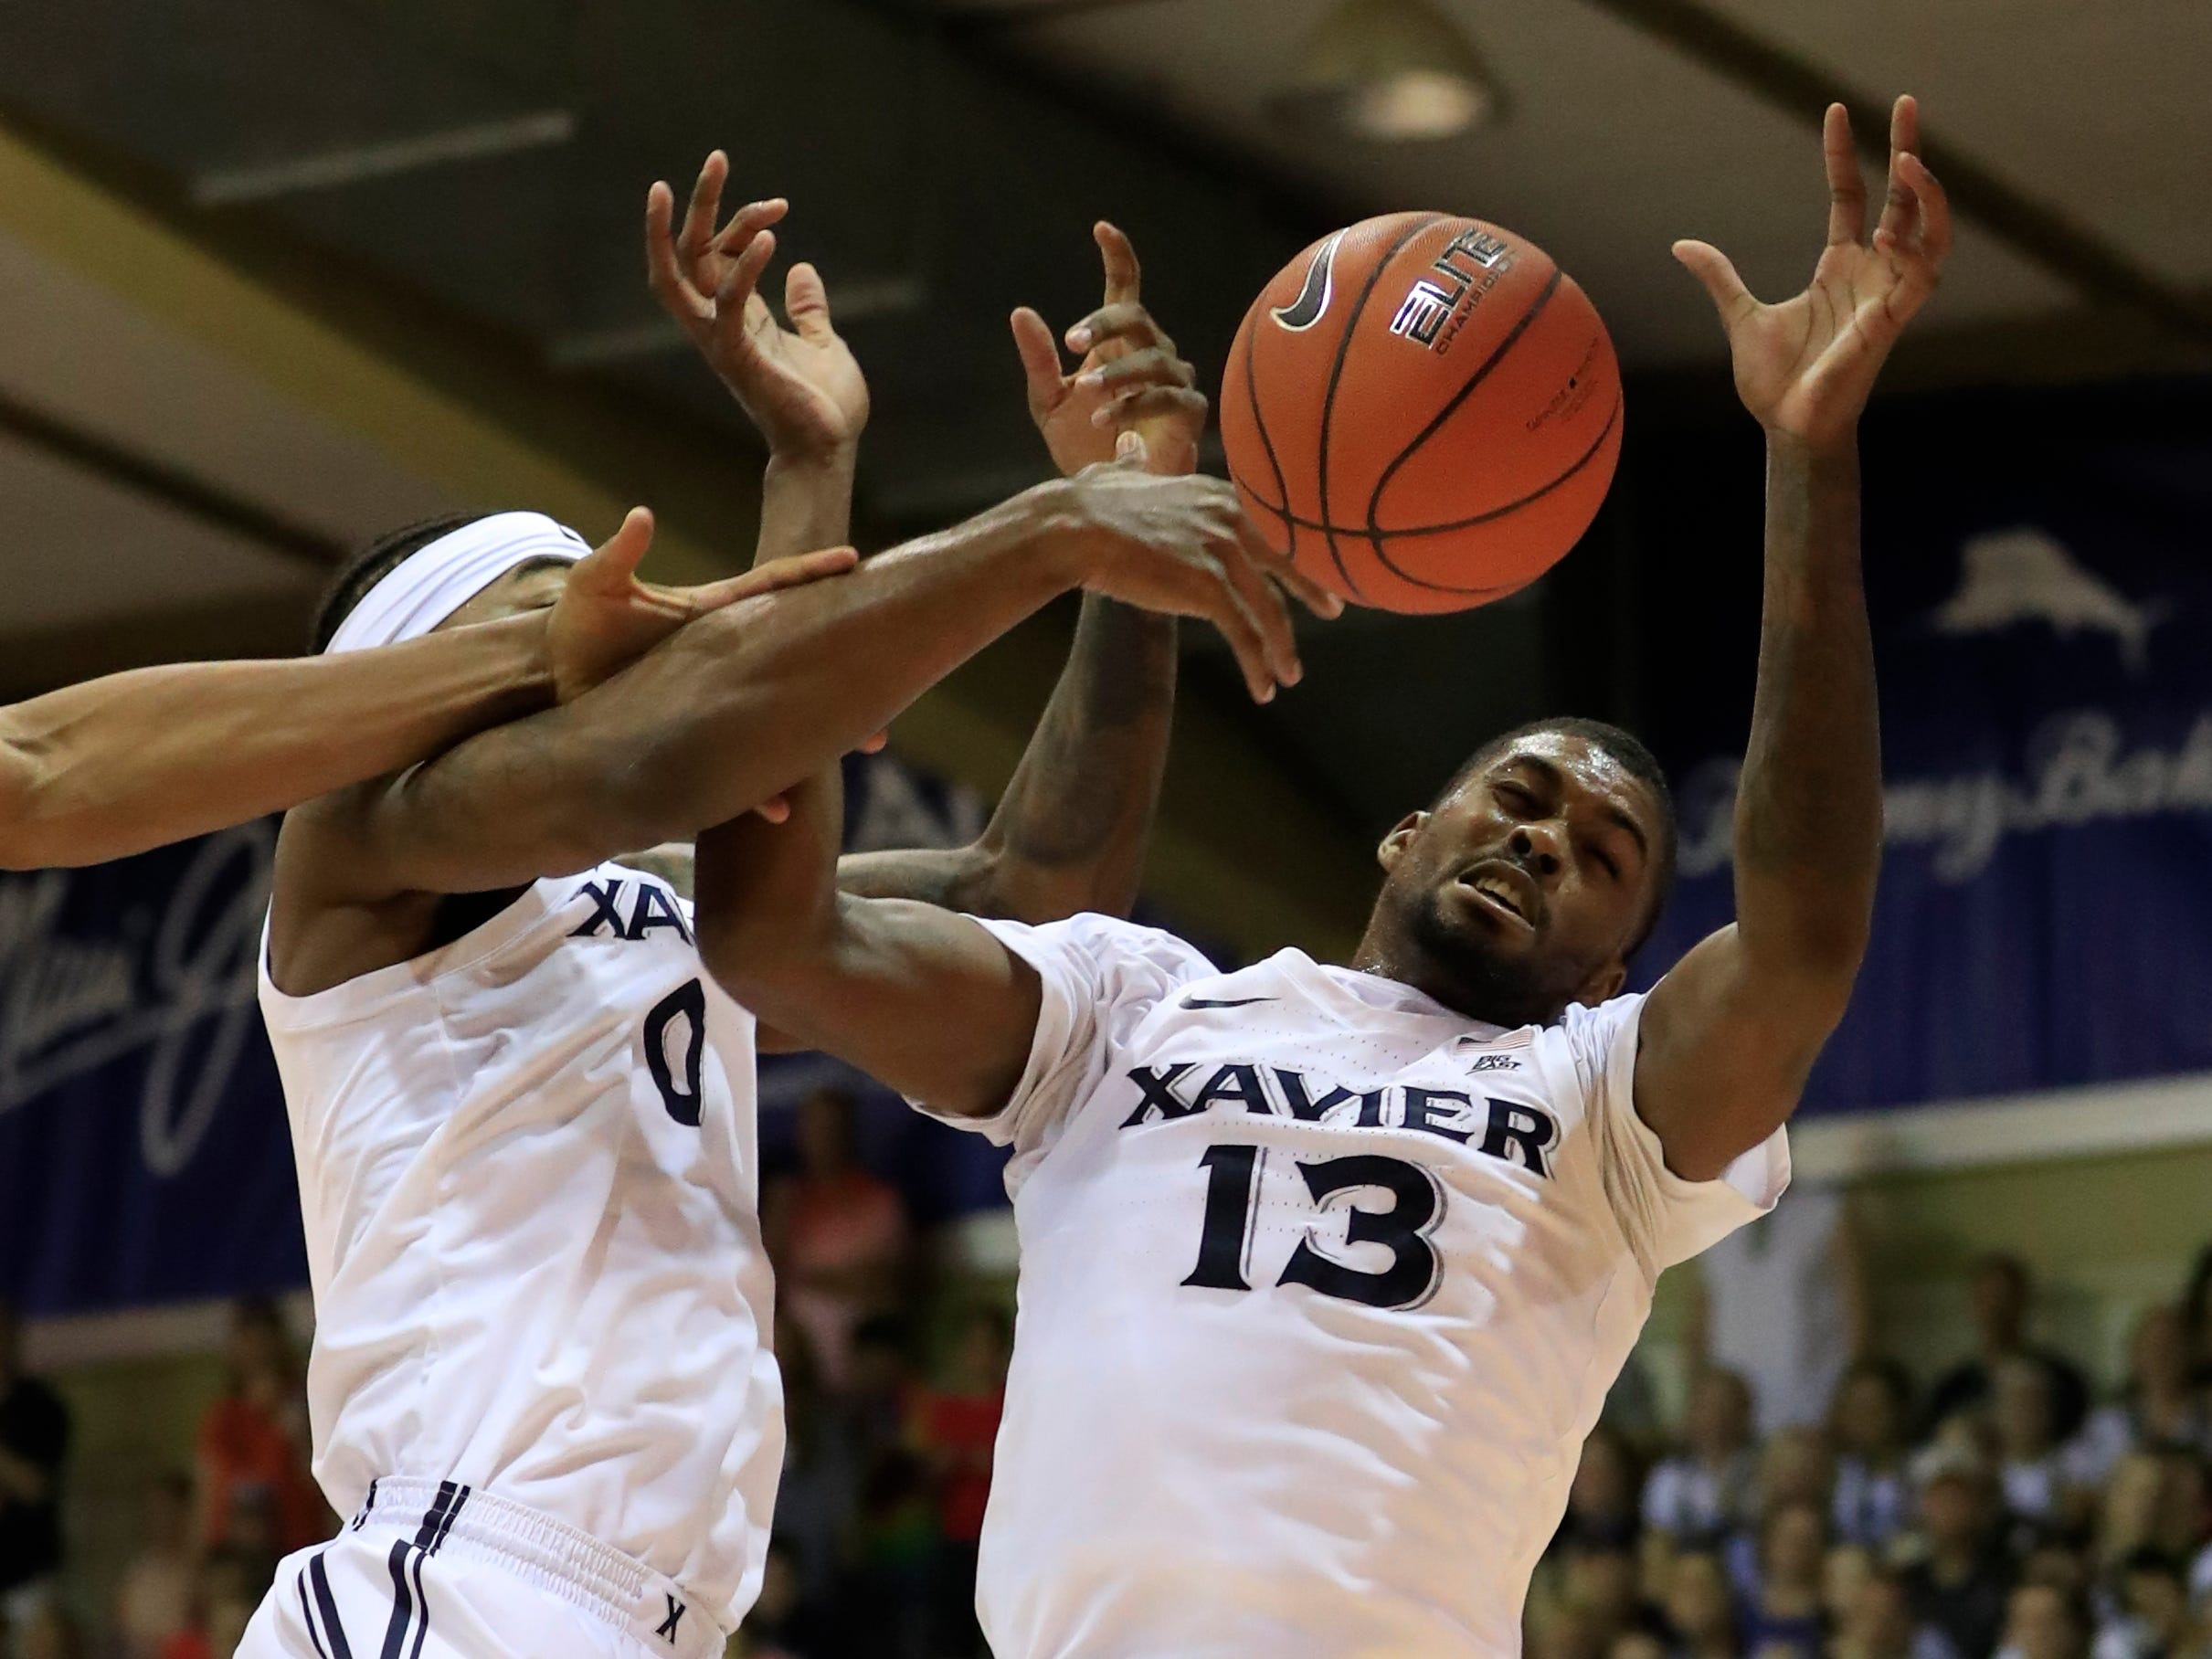 Xavier forwards Tyrique Jones (0) and Naji Marshall (13) try to grab a rebound during the first half of an NCAA college basketball game against Auburn at the Maui Invitational, Monday, Nov. 19, 2018, in Lahaina, Hawaii.